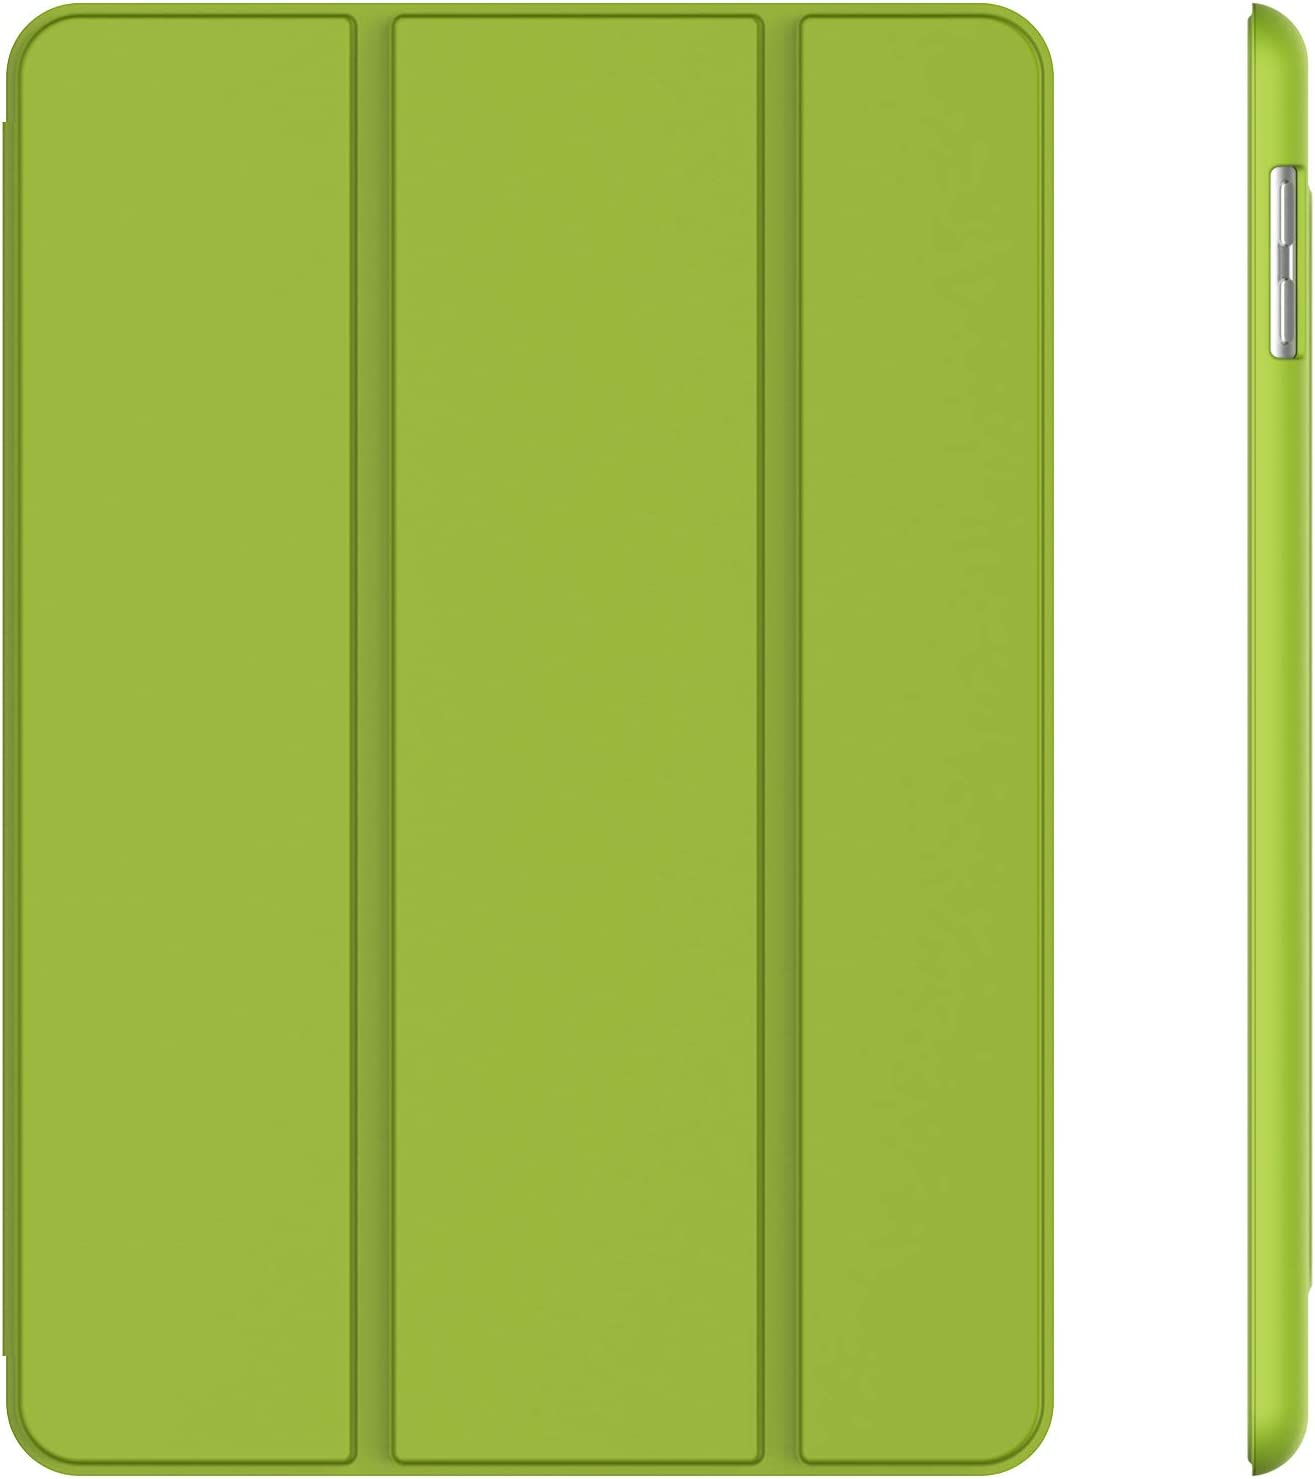 JETech Case for Apple iPad (9.7-Inch, 2018/2017 Model, 6th/5th Generation), Smart Cover Auto Wake/Sleep, Green